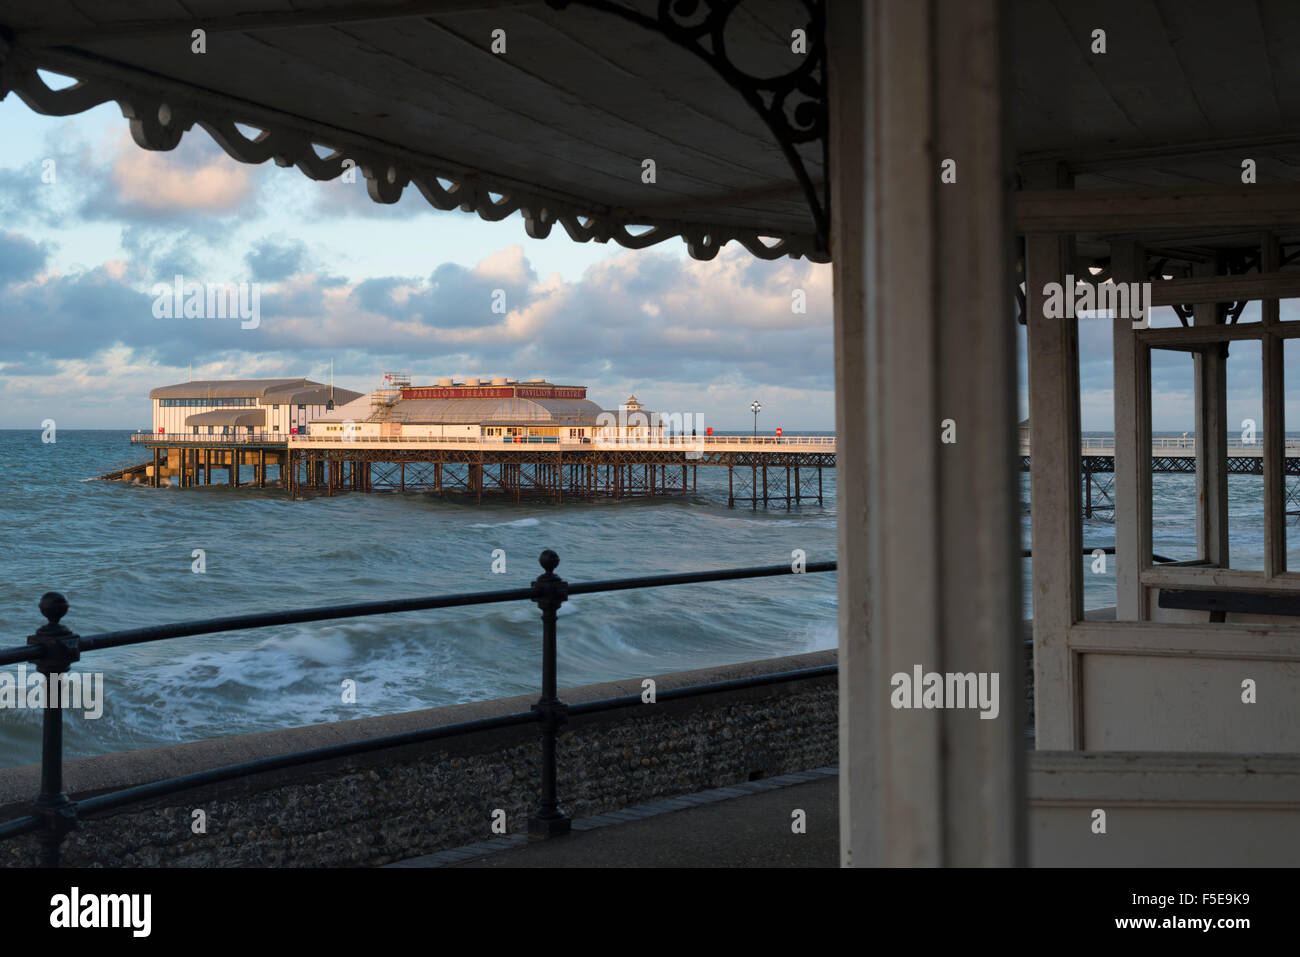 A view of Cromer pier, Norfolk, England, United Kingdom, Europe - Stock Image